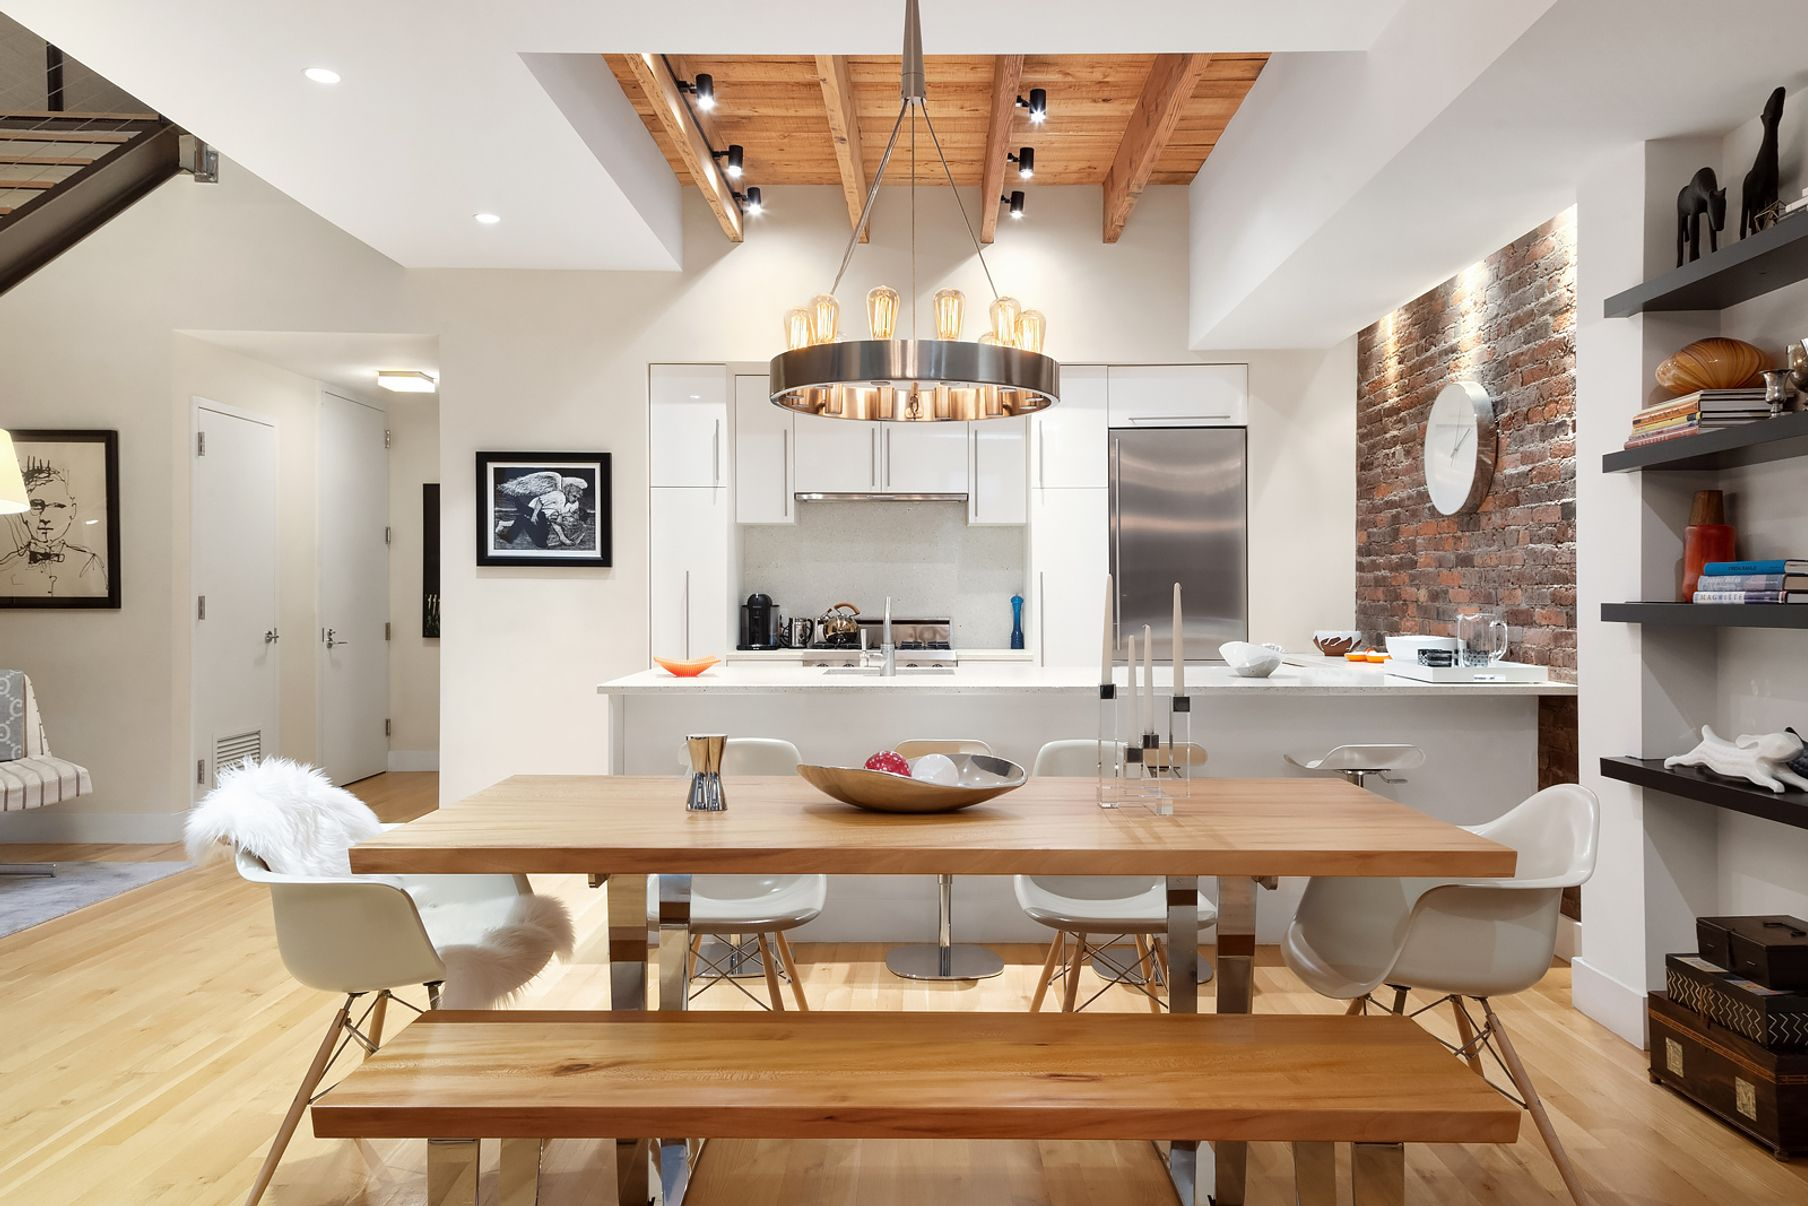 Thorndale, 406 West 45th Street